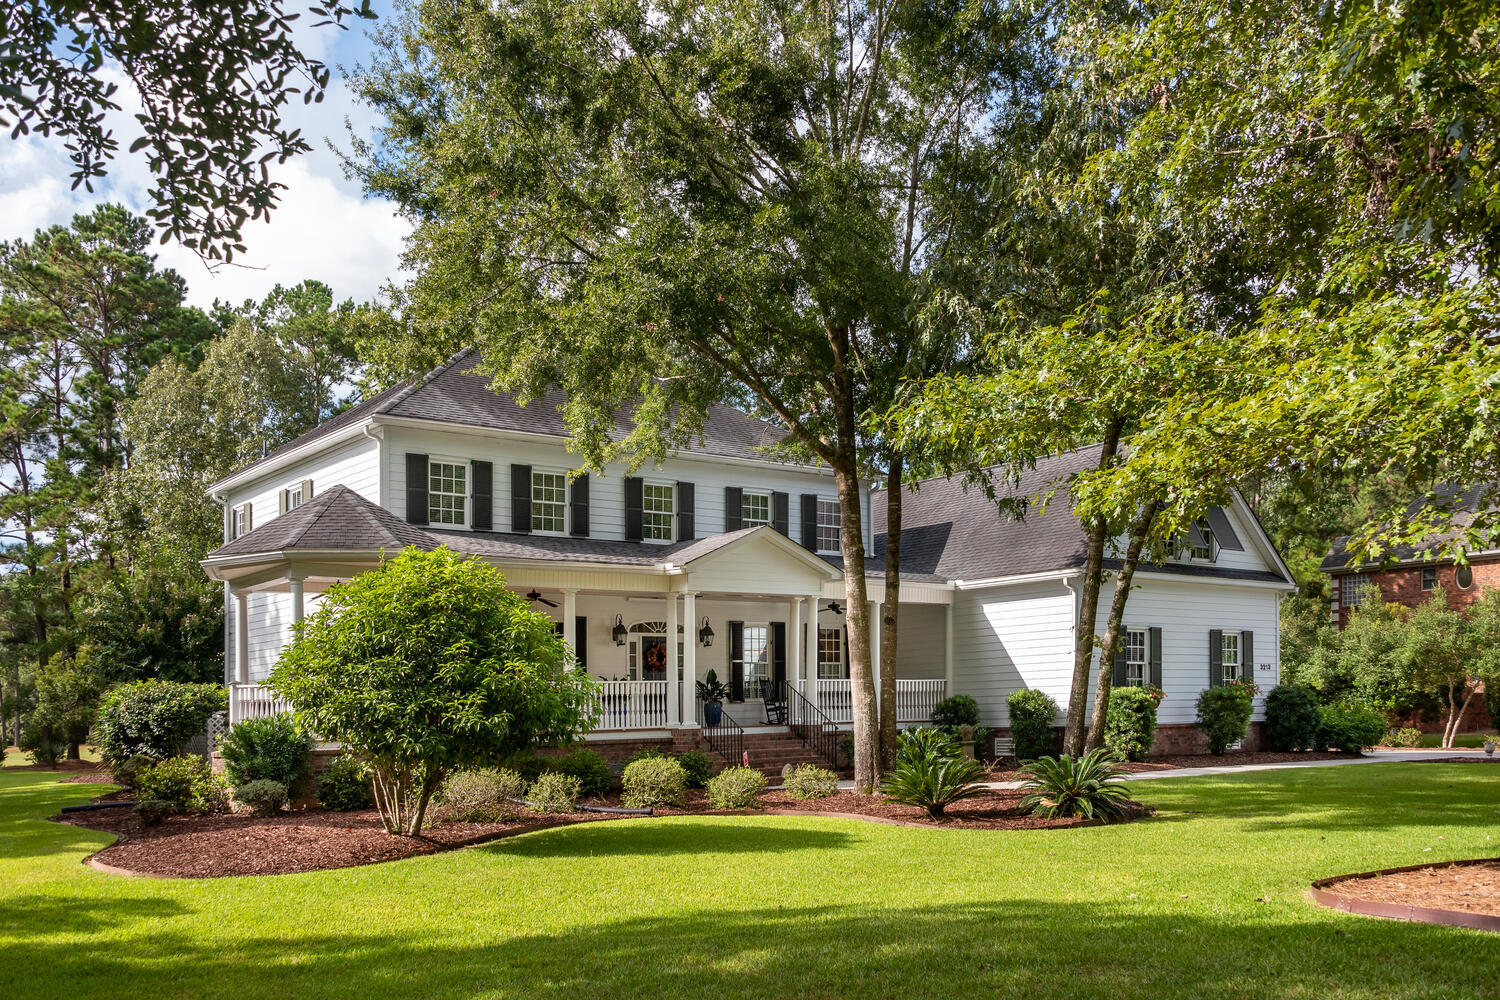 Stunning custom built lowcountry style home featuring an inviting wrap-around porch and situated on a beautifully landscaped 1 acre golf course lot. Walking through the front door the welcoming foyer is flanked by a formal living room on the left flowing seamlessly into the family room and a formal dining room on the right with direct access to the kitchen. The family room showcases a hand carved mahogany mantle, stately built in bookcases and french doors that lead to an oversized screened porch and patio with endless views of the retention pond and golf course beyond. The custom kitchen open to the family room does not disappoint, featuring rich cherry bordeaux pull-out drawer cabinetry, double ovens, a center island and large pantry. The downstairs master bedroom. overlooks the golf course and allows access to the screened porch. The well appointed recently renovated master bathroom includes a jetted hot tub, separate shower, dual vanities and a large walk in closet.  A spacious laundry room is conveniently located adjacent to the master bedroom on this level. The second floor is accessible by two separate flights of stairs one of which is located in the foyer and the other at the back of the home off of the kitchen. The second floor features an oversized media room as well as an additional game/fitness room.   Three additional guest rooms including a second master bedroom with a large master bathroom and oversized closet complete this level. The third floor walk up attic offers plenty of storage and endless possibilities of being finished off as an additional bedroom if needed. The three car garage features epoxied floors and ample storage space. Additional features of this home include a Rinnai tankless hot water heater, custom hurricane shutters and a central vacuum system throughout the entire house. Buyers will love the privacy that this beautiful executive home offers on one of the most desirable streets in Dunes West.